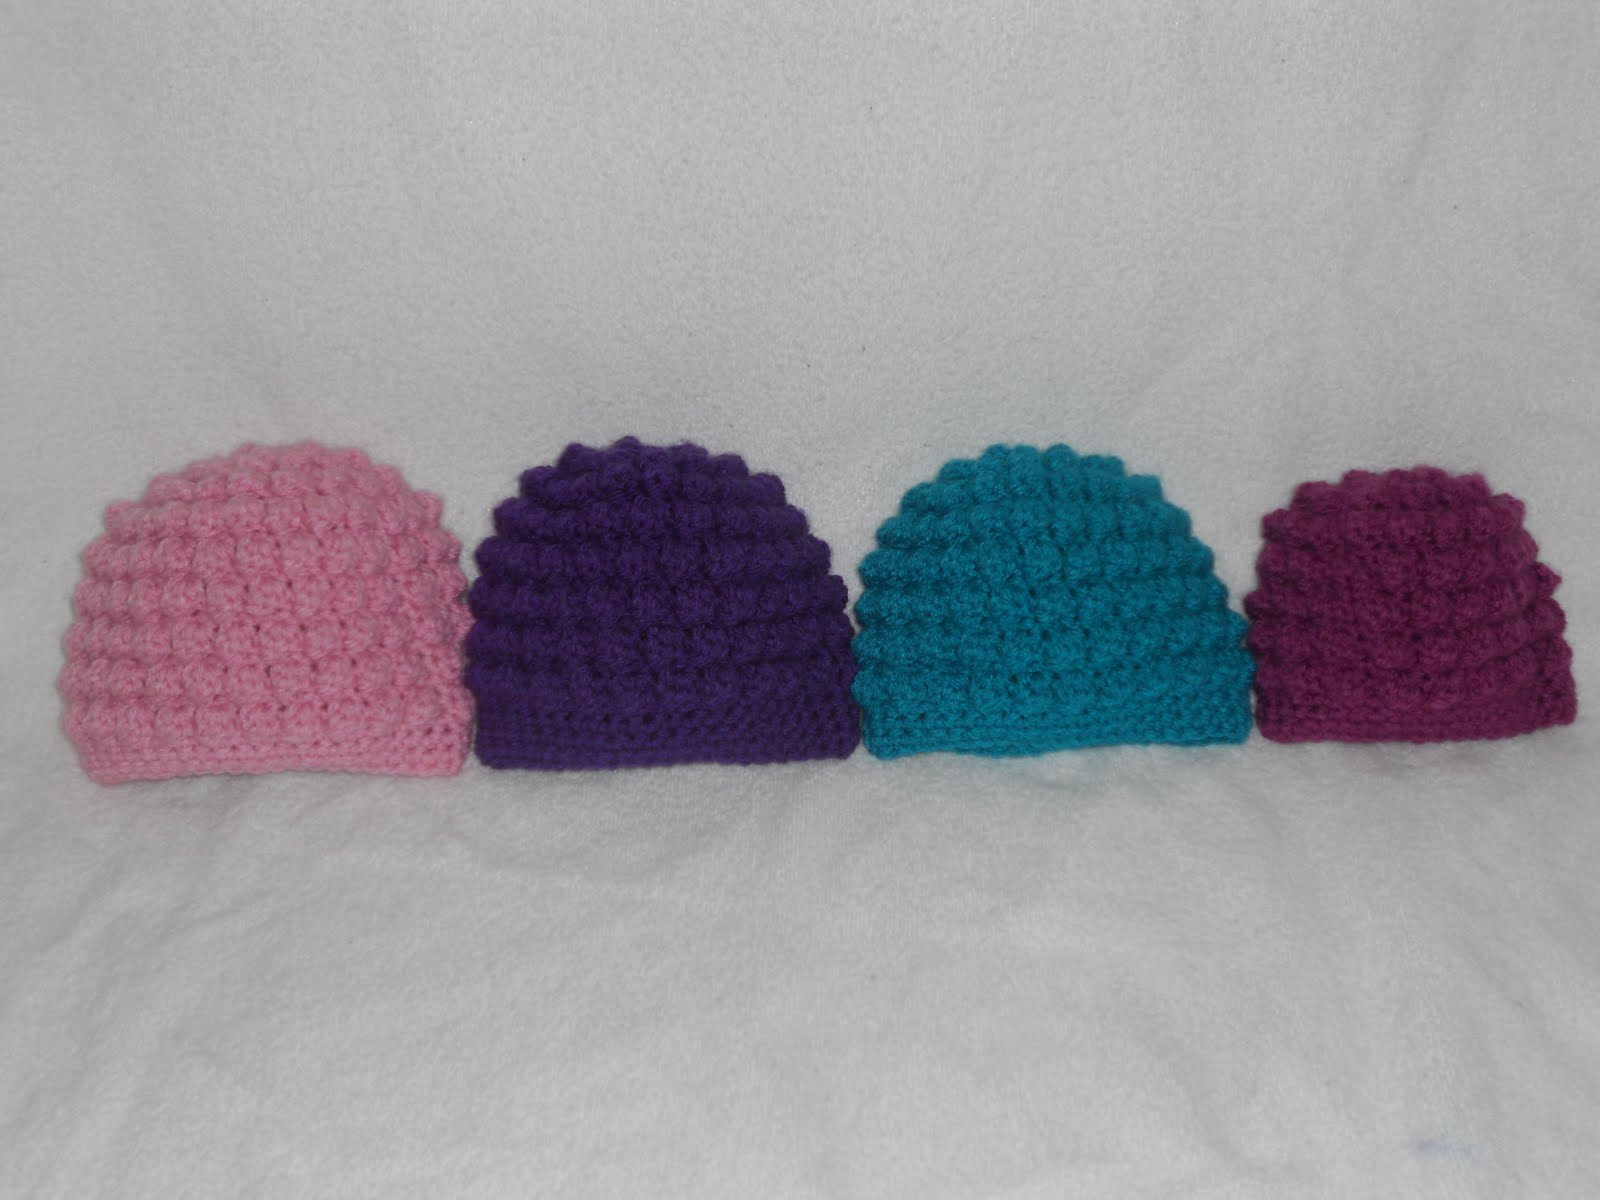 Crafty Woman Creations: Free Baby Bumpy Bobbles Beanie Crochet Pattern!